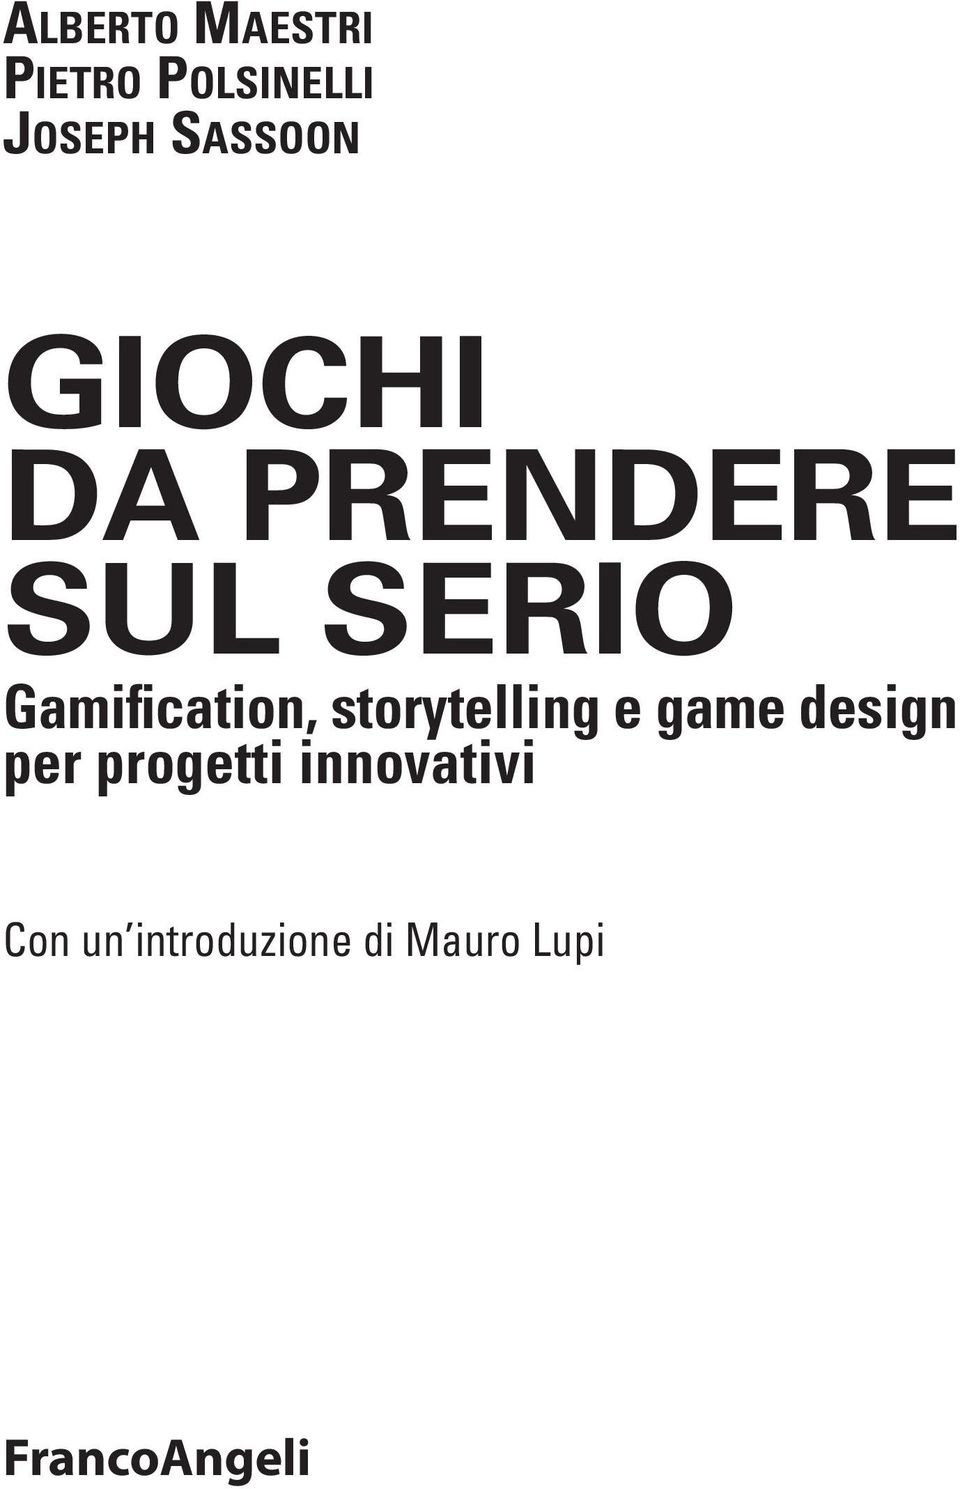 Gamification, storytelling e game design per